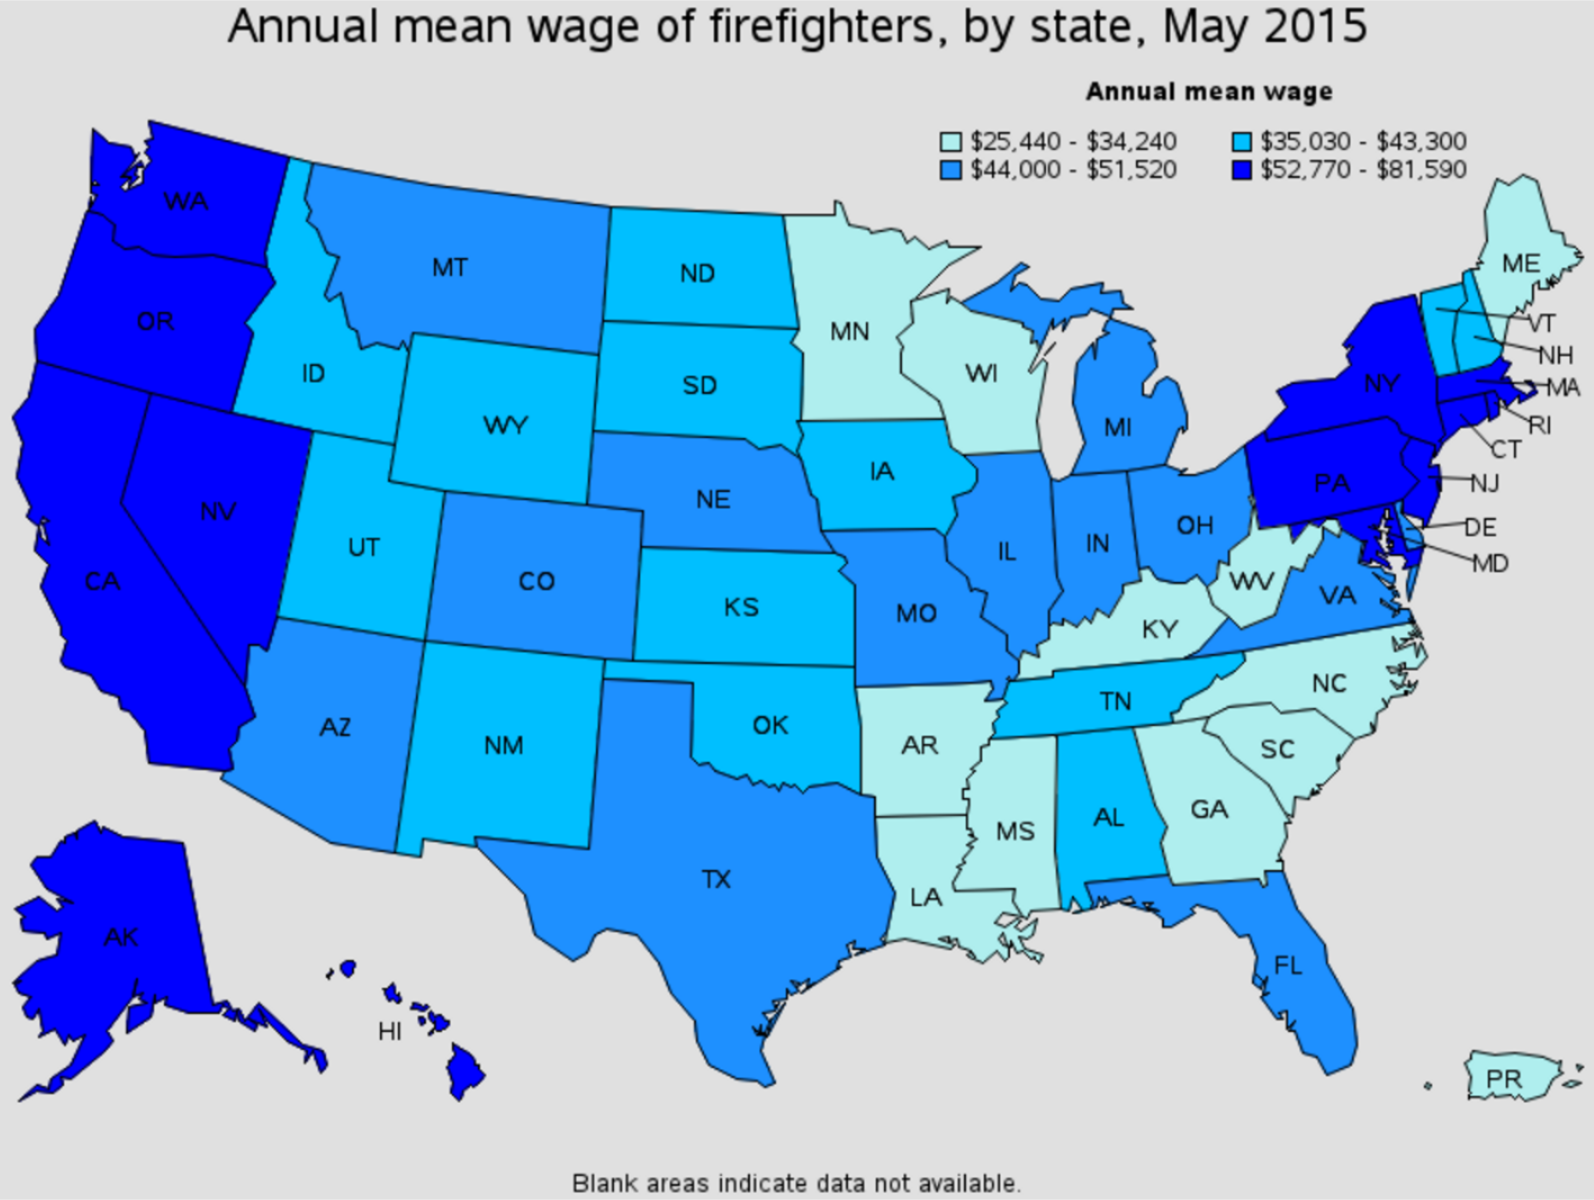 firefighter average salary by state Warren Rhode Island